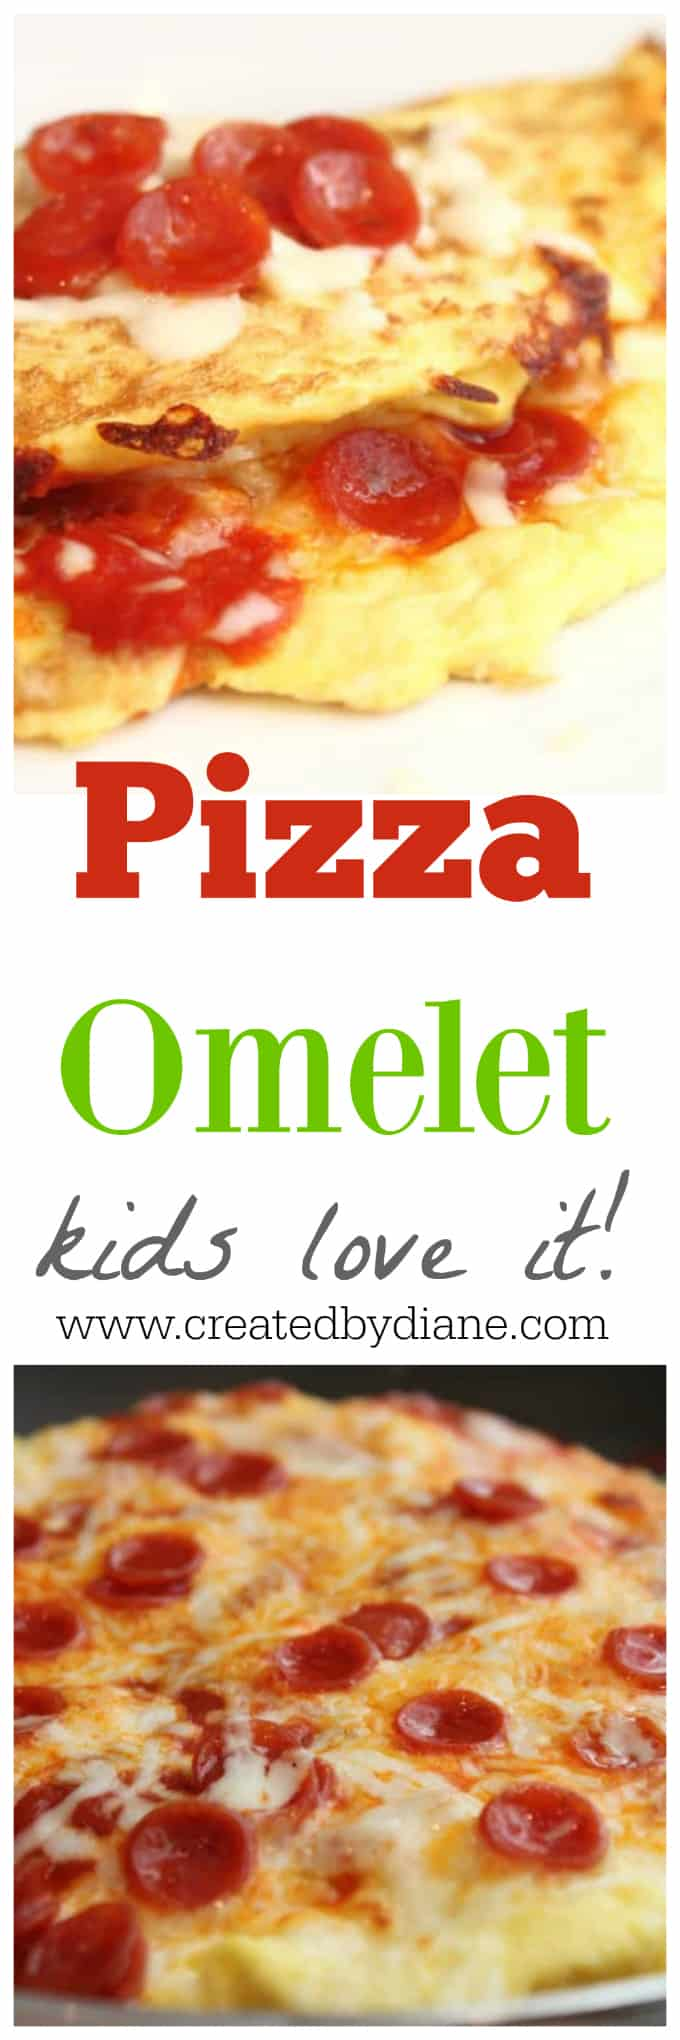 Pizza Omelet recipe great for low carb eating, #LCHF #keto #lowcarb kids love this and it's fast and easy to make perfect every time www.createdbydiane.com